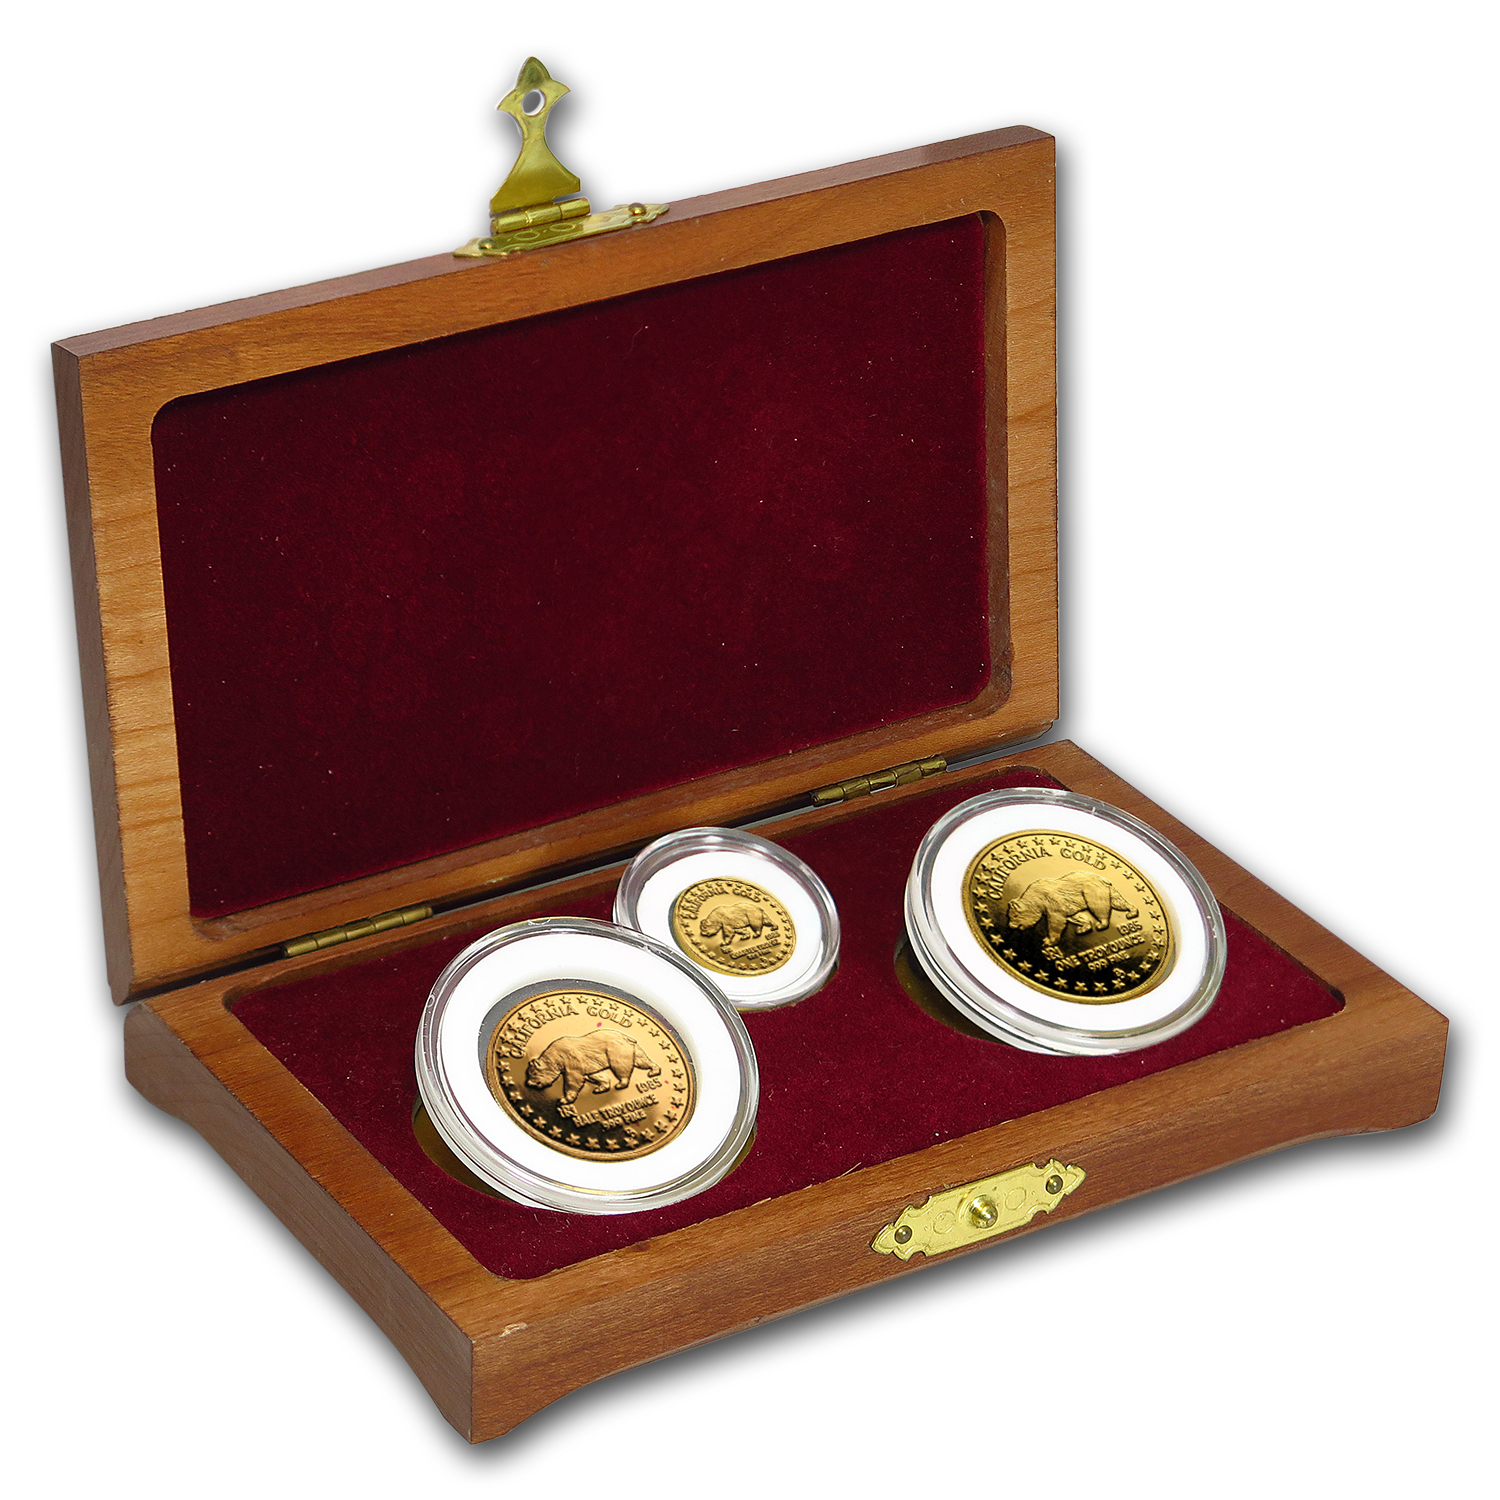 1984 Great Seal of California 3-Piece Gold Set